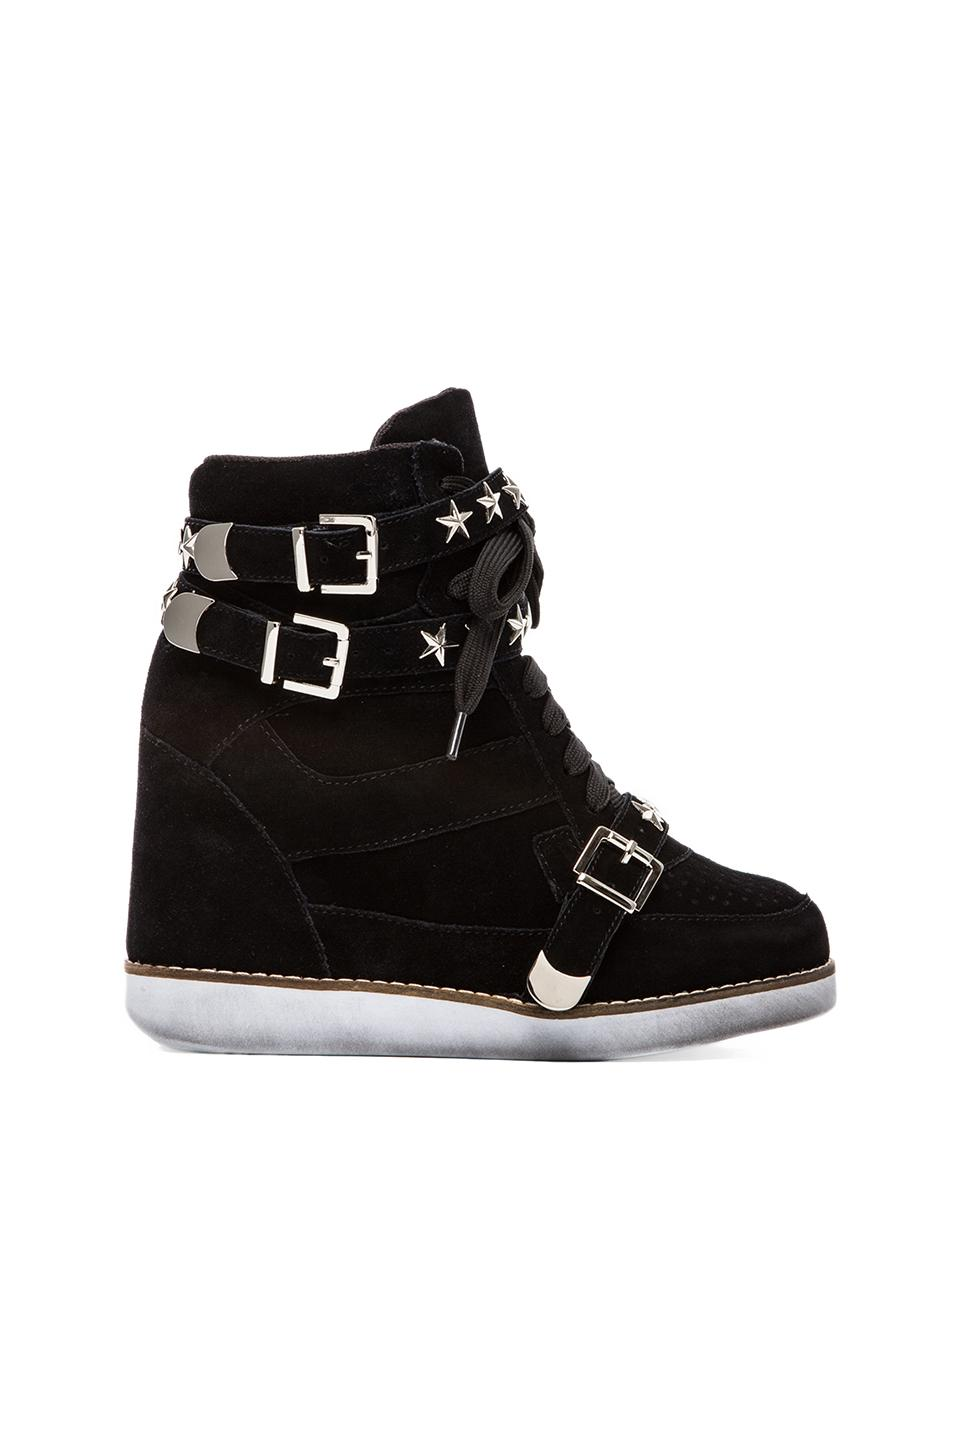 Jeffrey Campbell EXCLUSIVE Bonn Star Suede Wedge Sneaker in Black